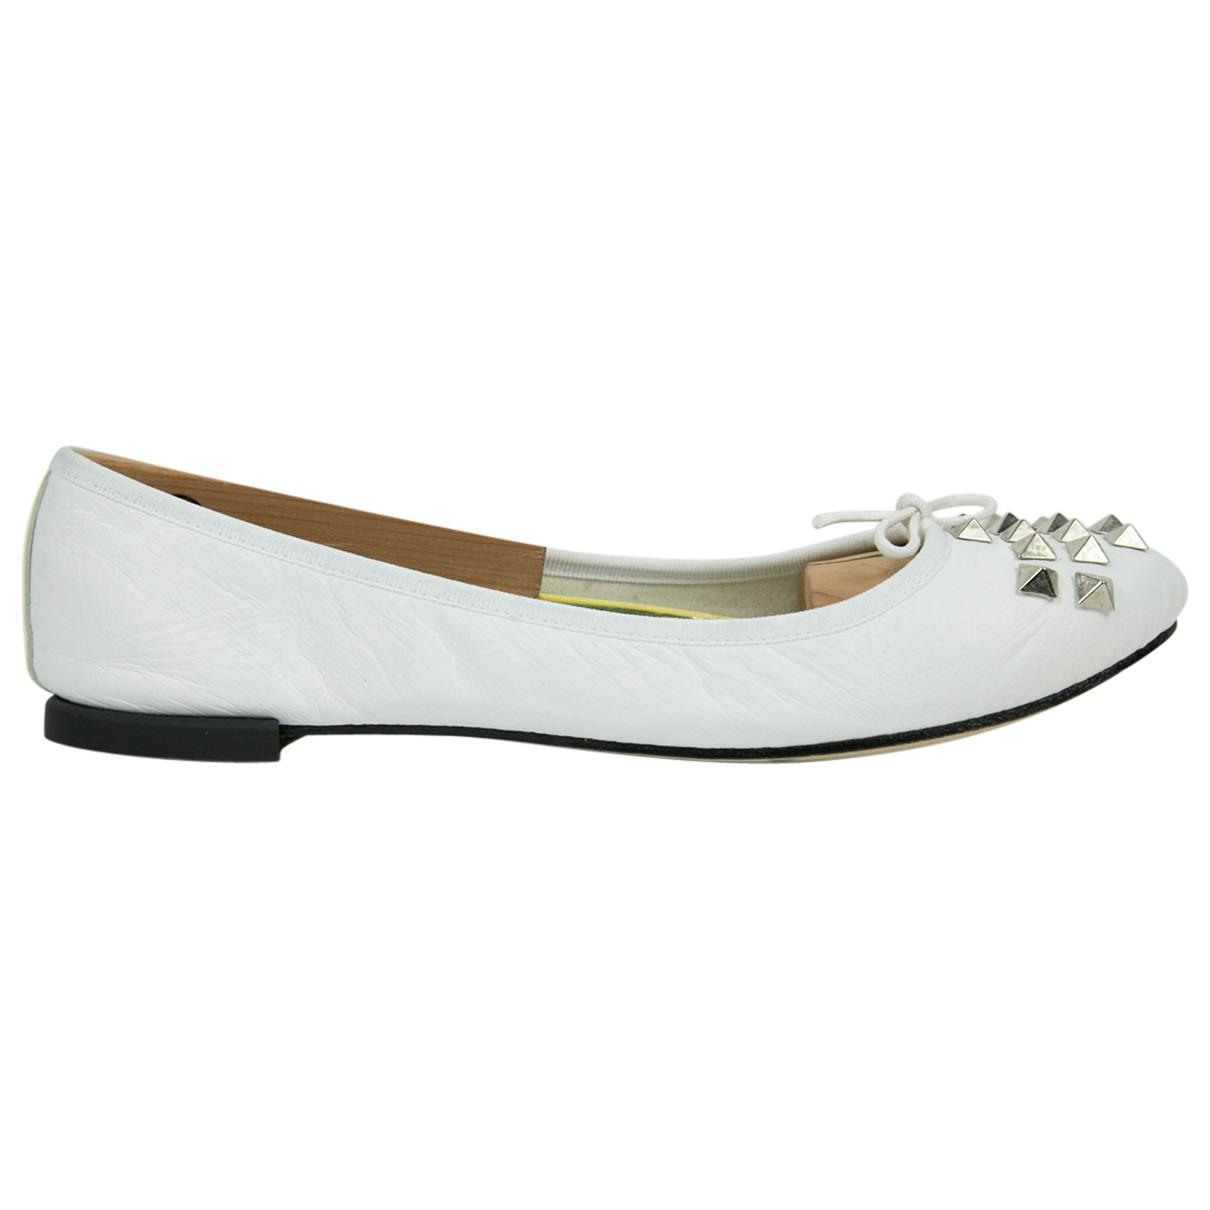 Pre-owned - Leather flats Repetto yQ3f6WBe